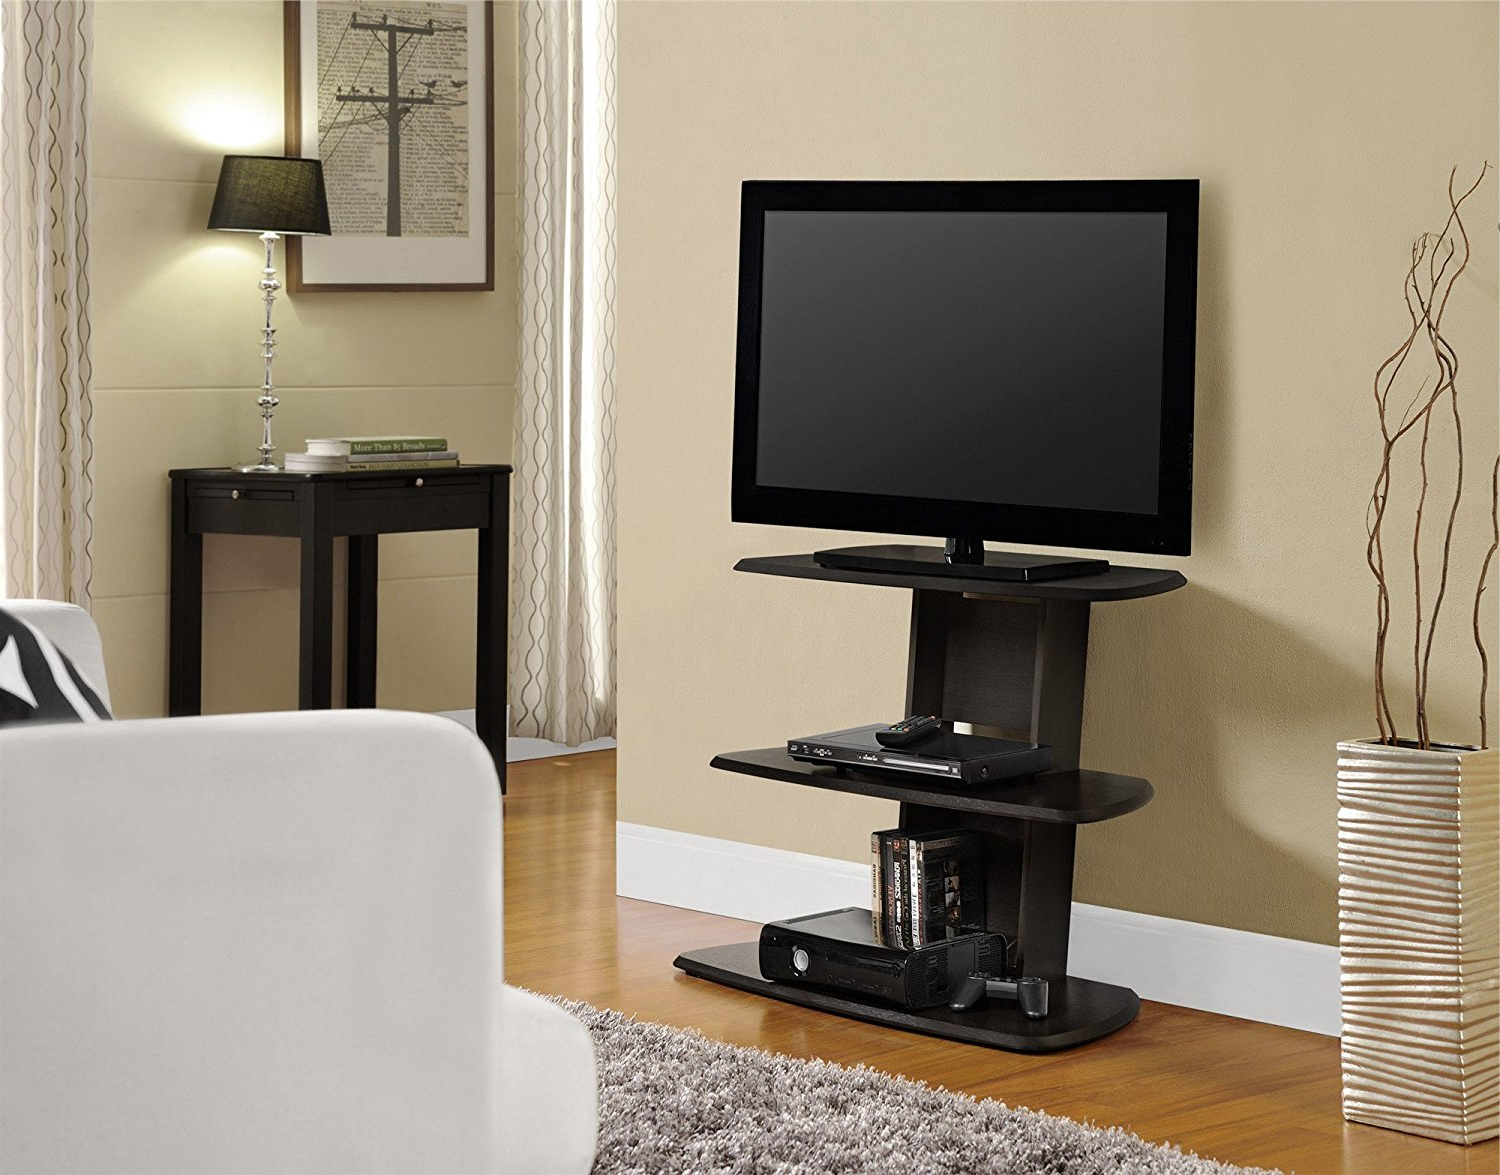 32 Inch Tv Stands Pertaining To Recent How To Find A 32 Inch Tv Stand For Your Budget – Furnish Ideas (View 7 of 20)